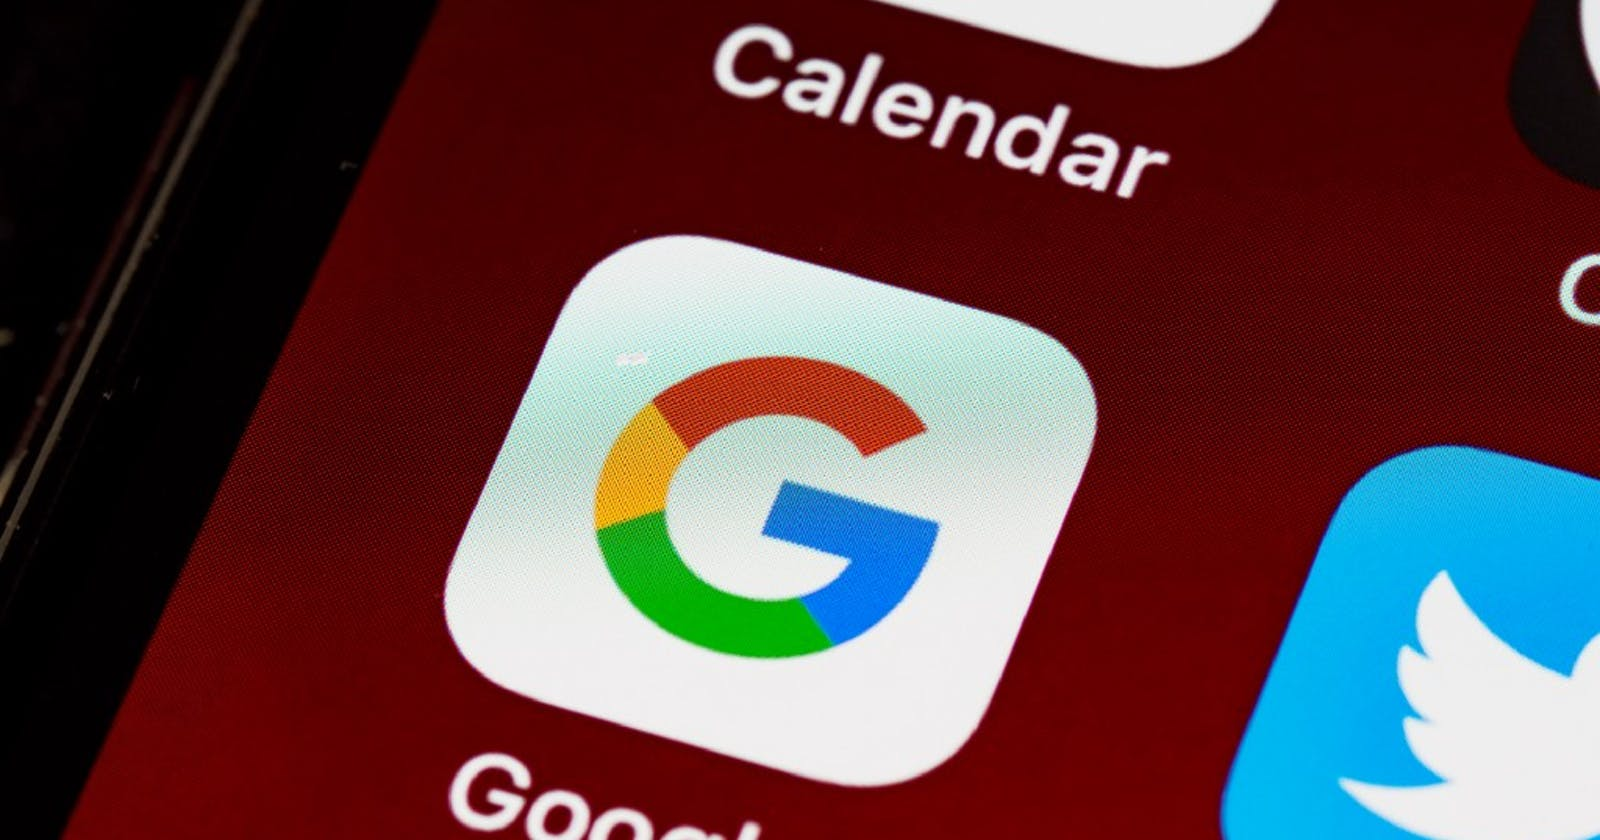 Google Chrome—How to Inspect Websites on Mobile Devices